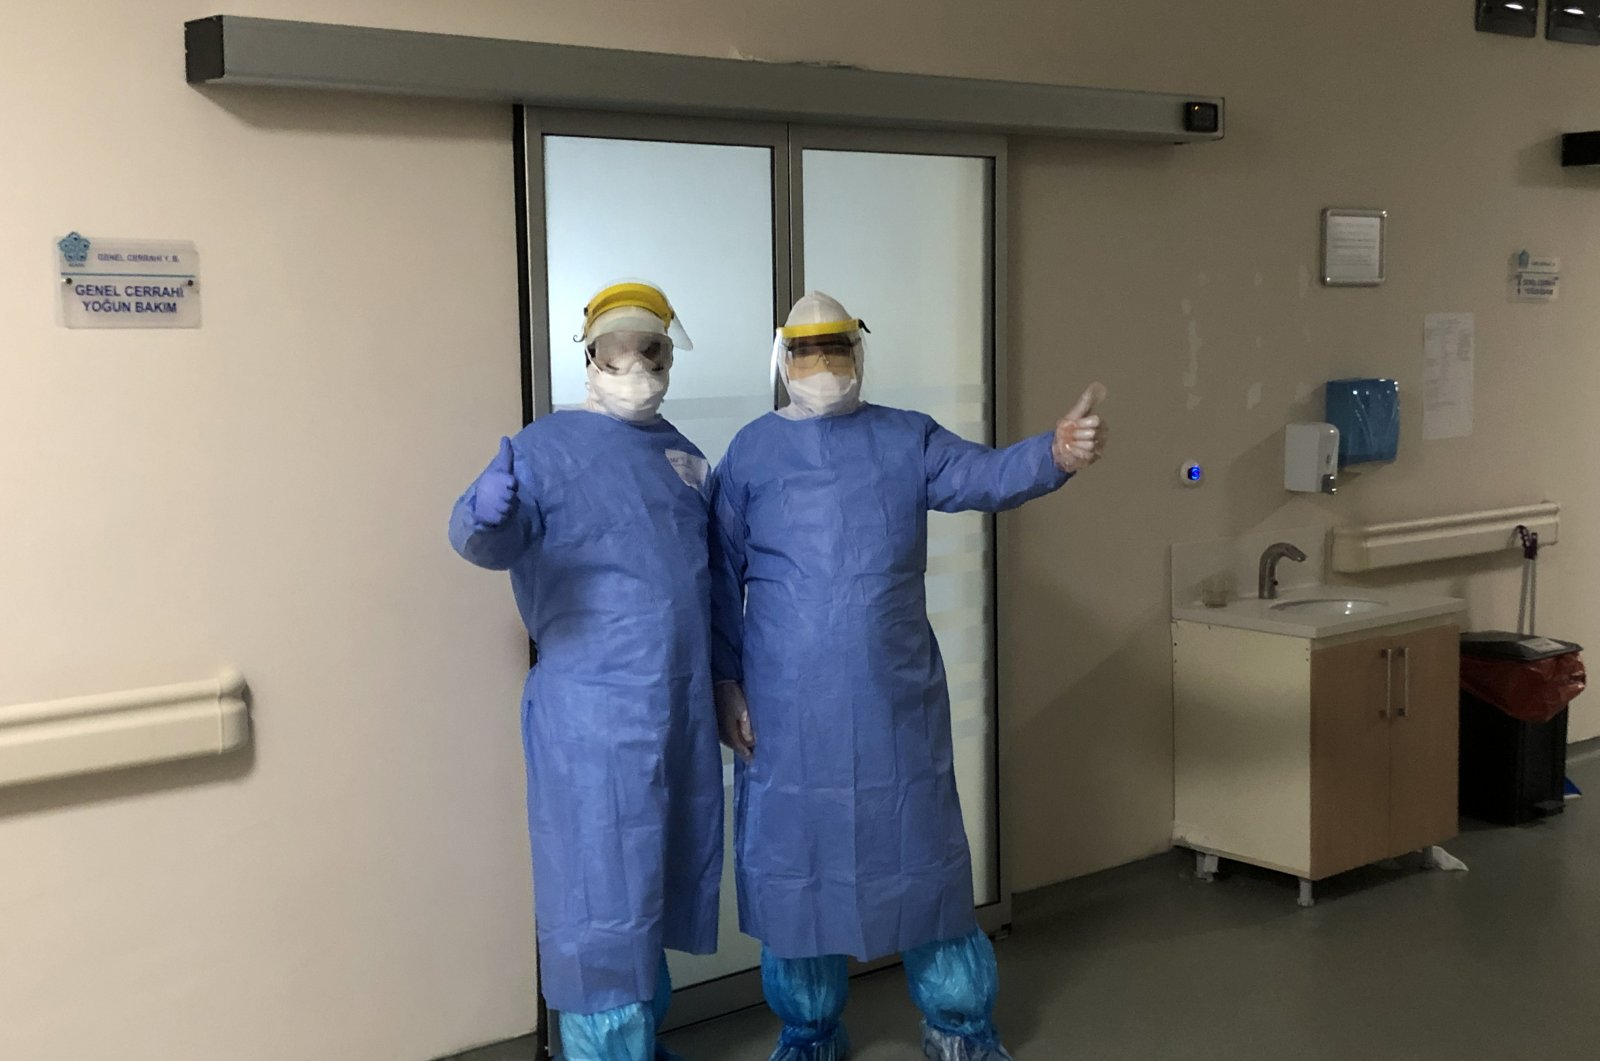 Health care staff wearing protective gearing pose outside an intensive care unit, Konya, Turkey, April 11, 2020. (PHOTO BY HALİT TURAN)